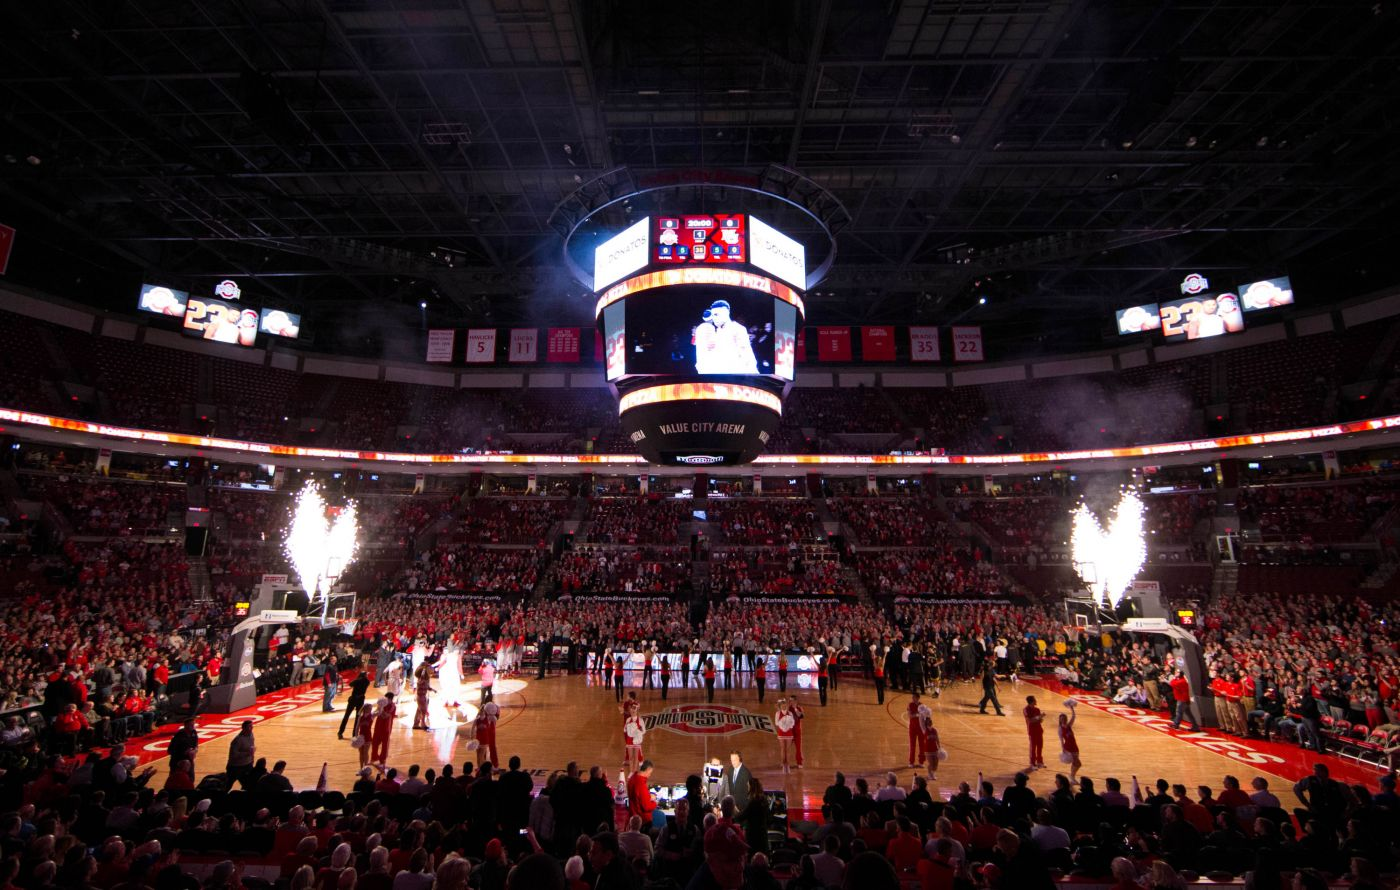 Nov 18, 2014; Columbus, OH, USA; A general view of fireworks being shot during the Ohio State Buckeyes introductions before the game against the Marquette Golden Eagles at Value City Arena. Ohio State won the game 74-63. Mandatory Credit: Greg Bartram-USA TODAY Sports